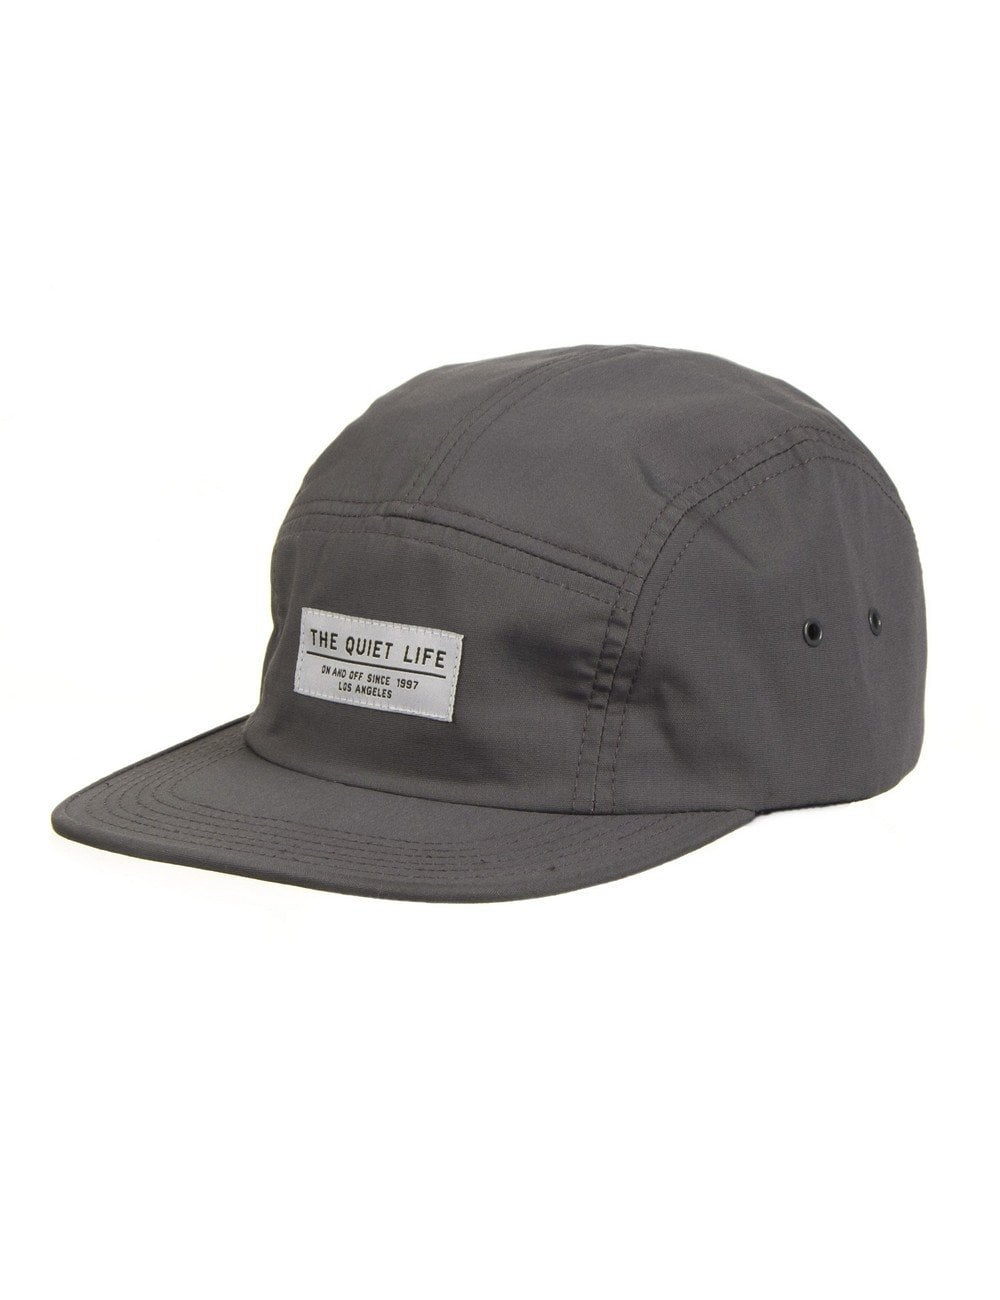 4eb8b23a7eb The Quiet Life Whisper 5 Panel Hat - Grey - Accessories from Fat ...